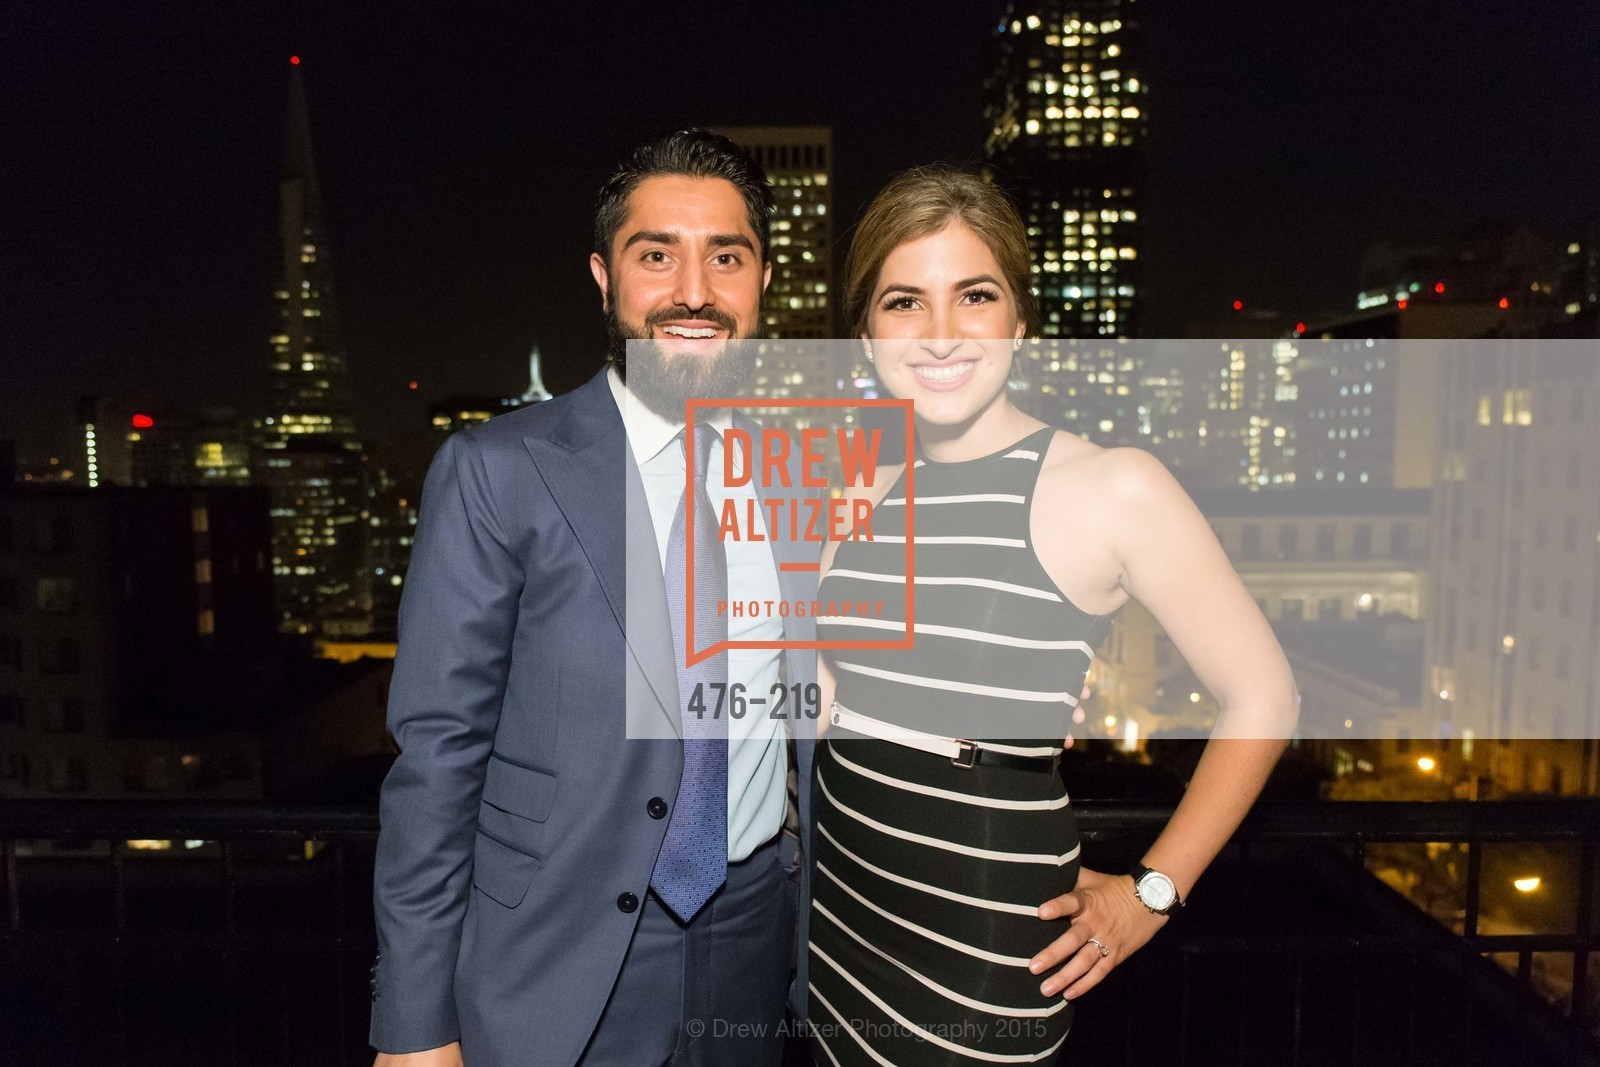 Roh Habibi, Shugufa Habibi, Champagne Reception & Screening of Million Dollar Listing San Francisco, University Club. 800 Powell St, August 5th, 2015,Drew Altizer, Drew Altizer Photography, full-service agency, private events, San Francisco photographer, photographer california